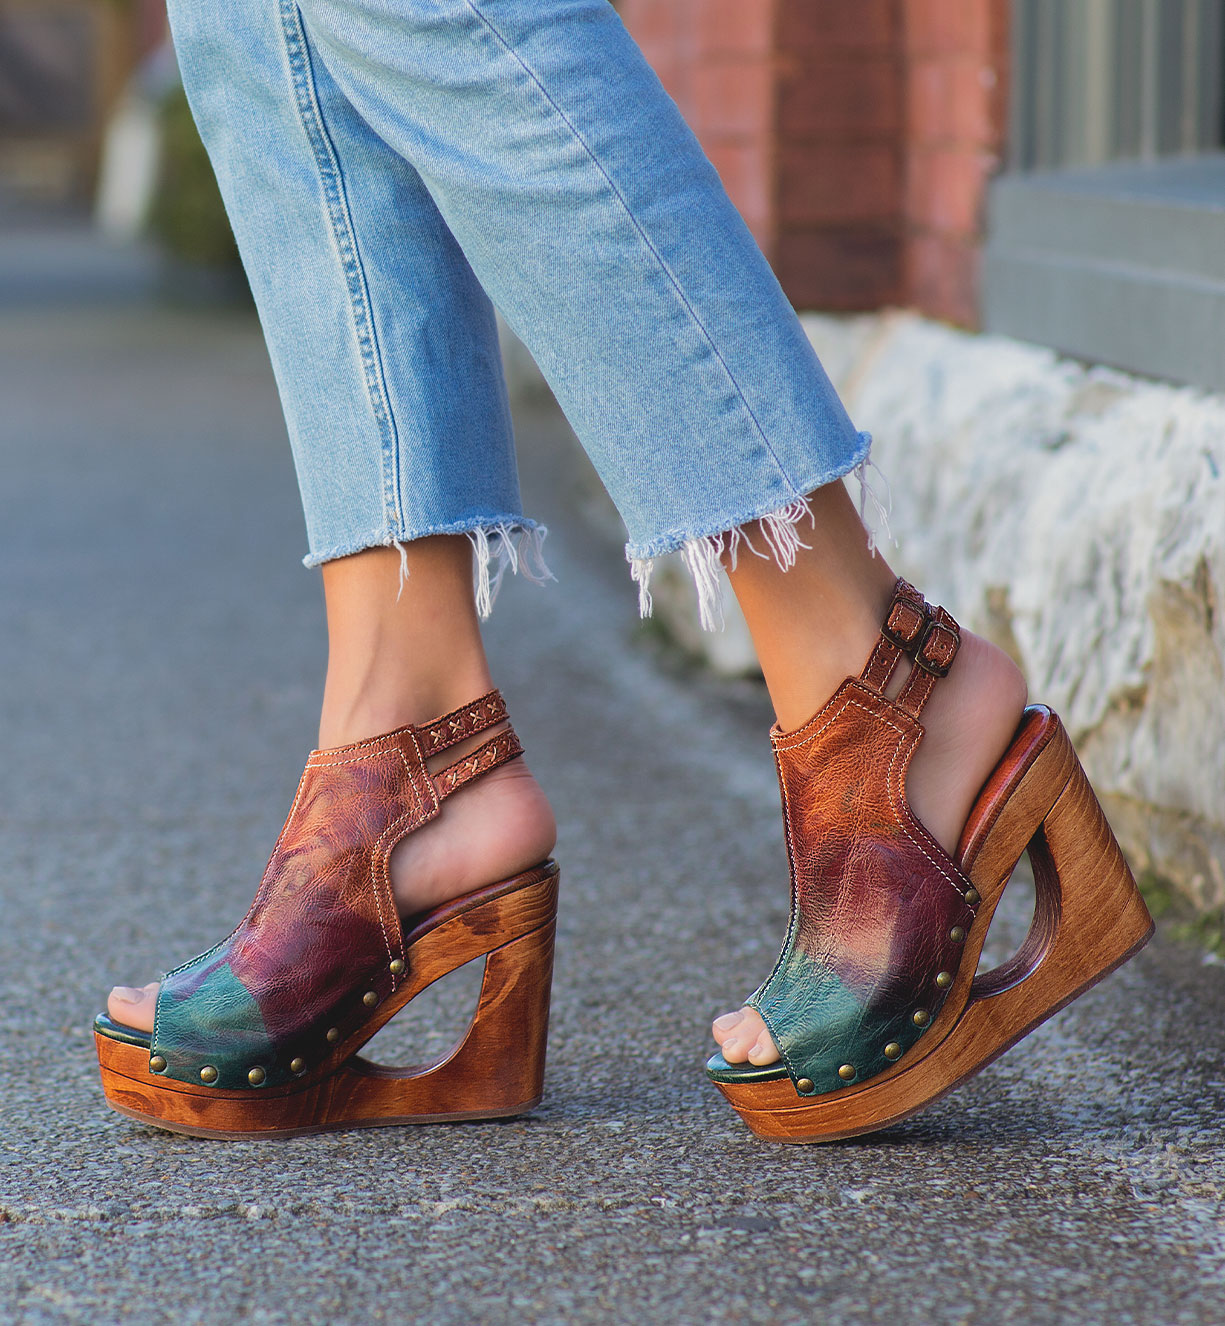 Woman's foot wearing color blocking leather heels wedges